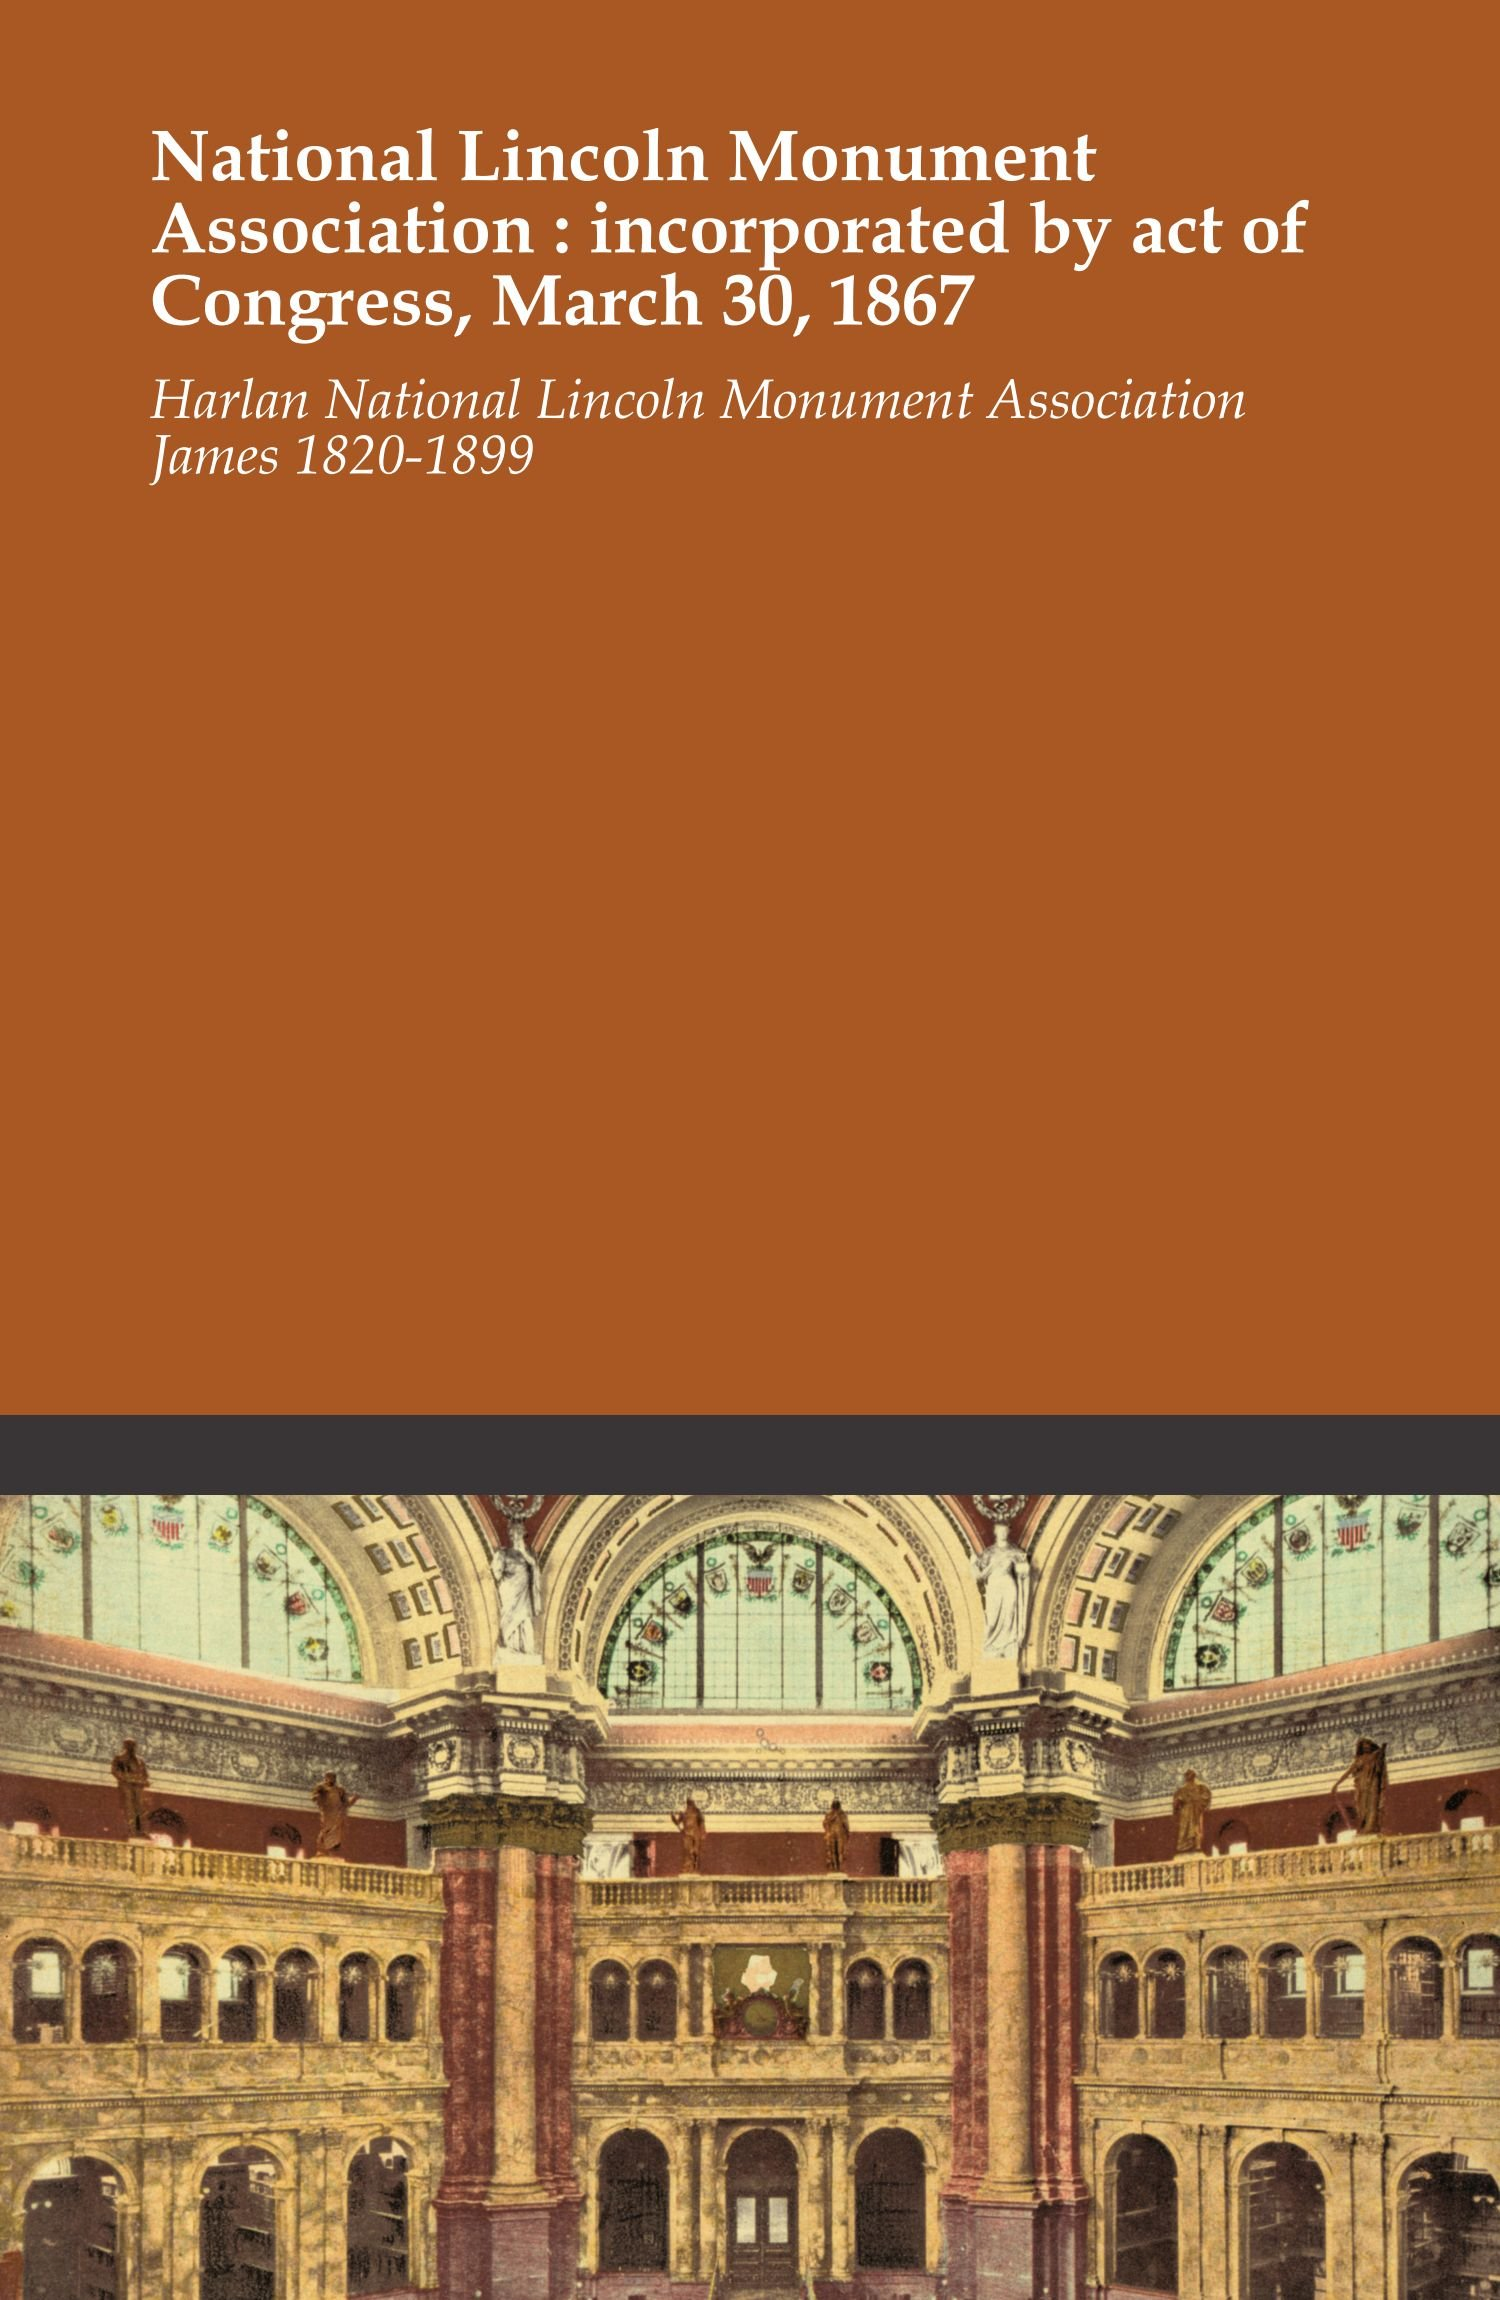 Download National Lincoln Monument Association : incorporated by act of Congress, March 30, 1867 ebook